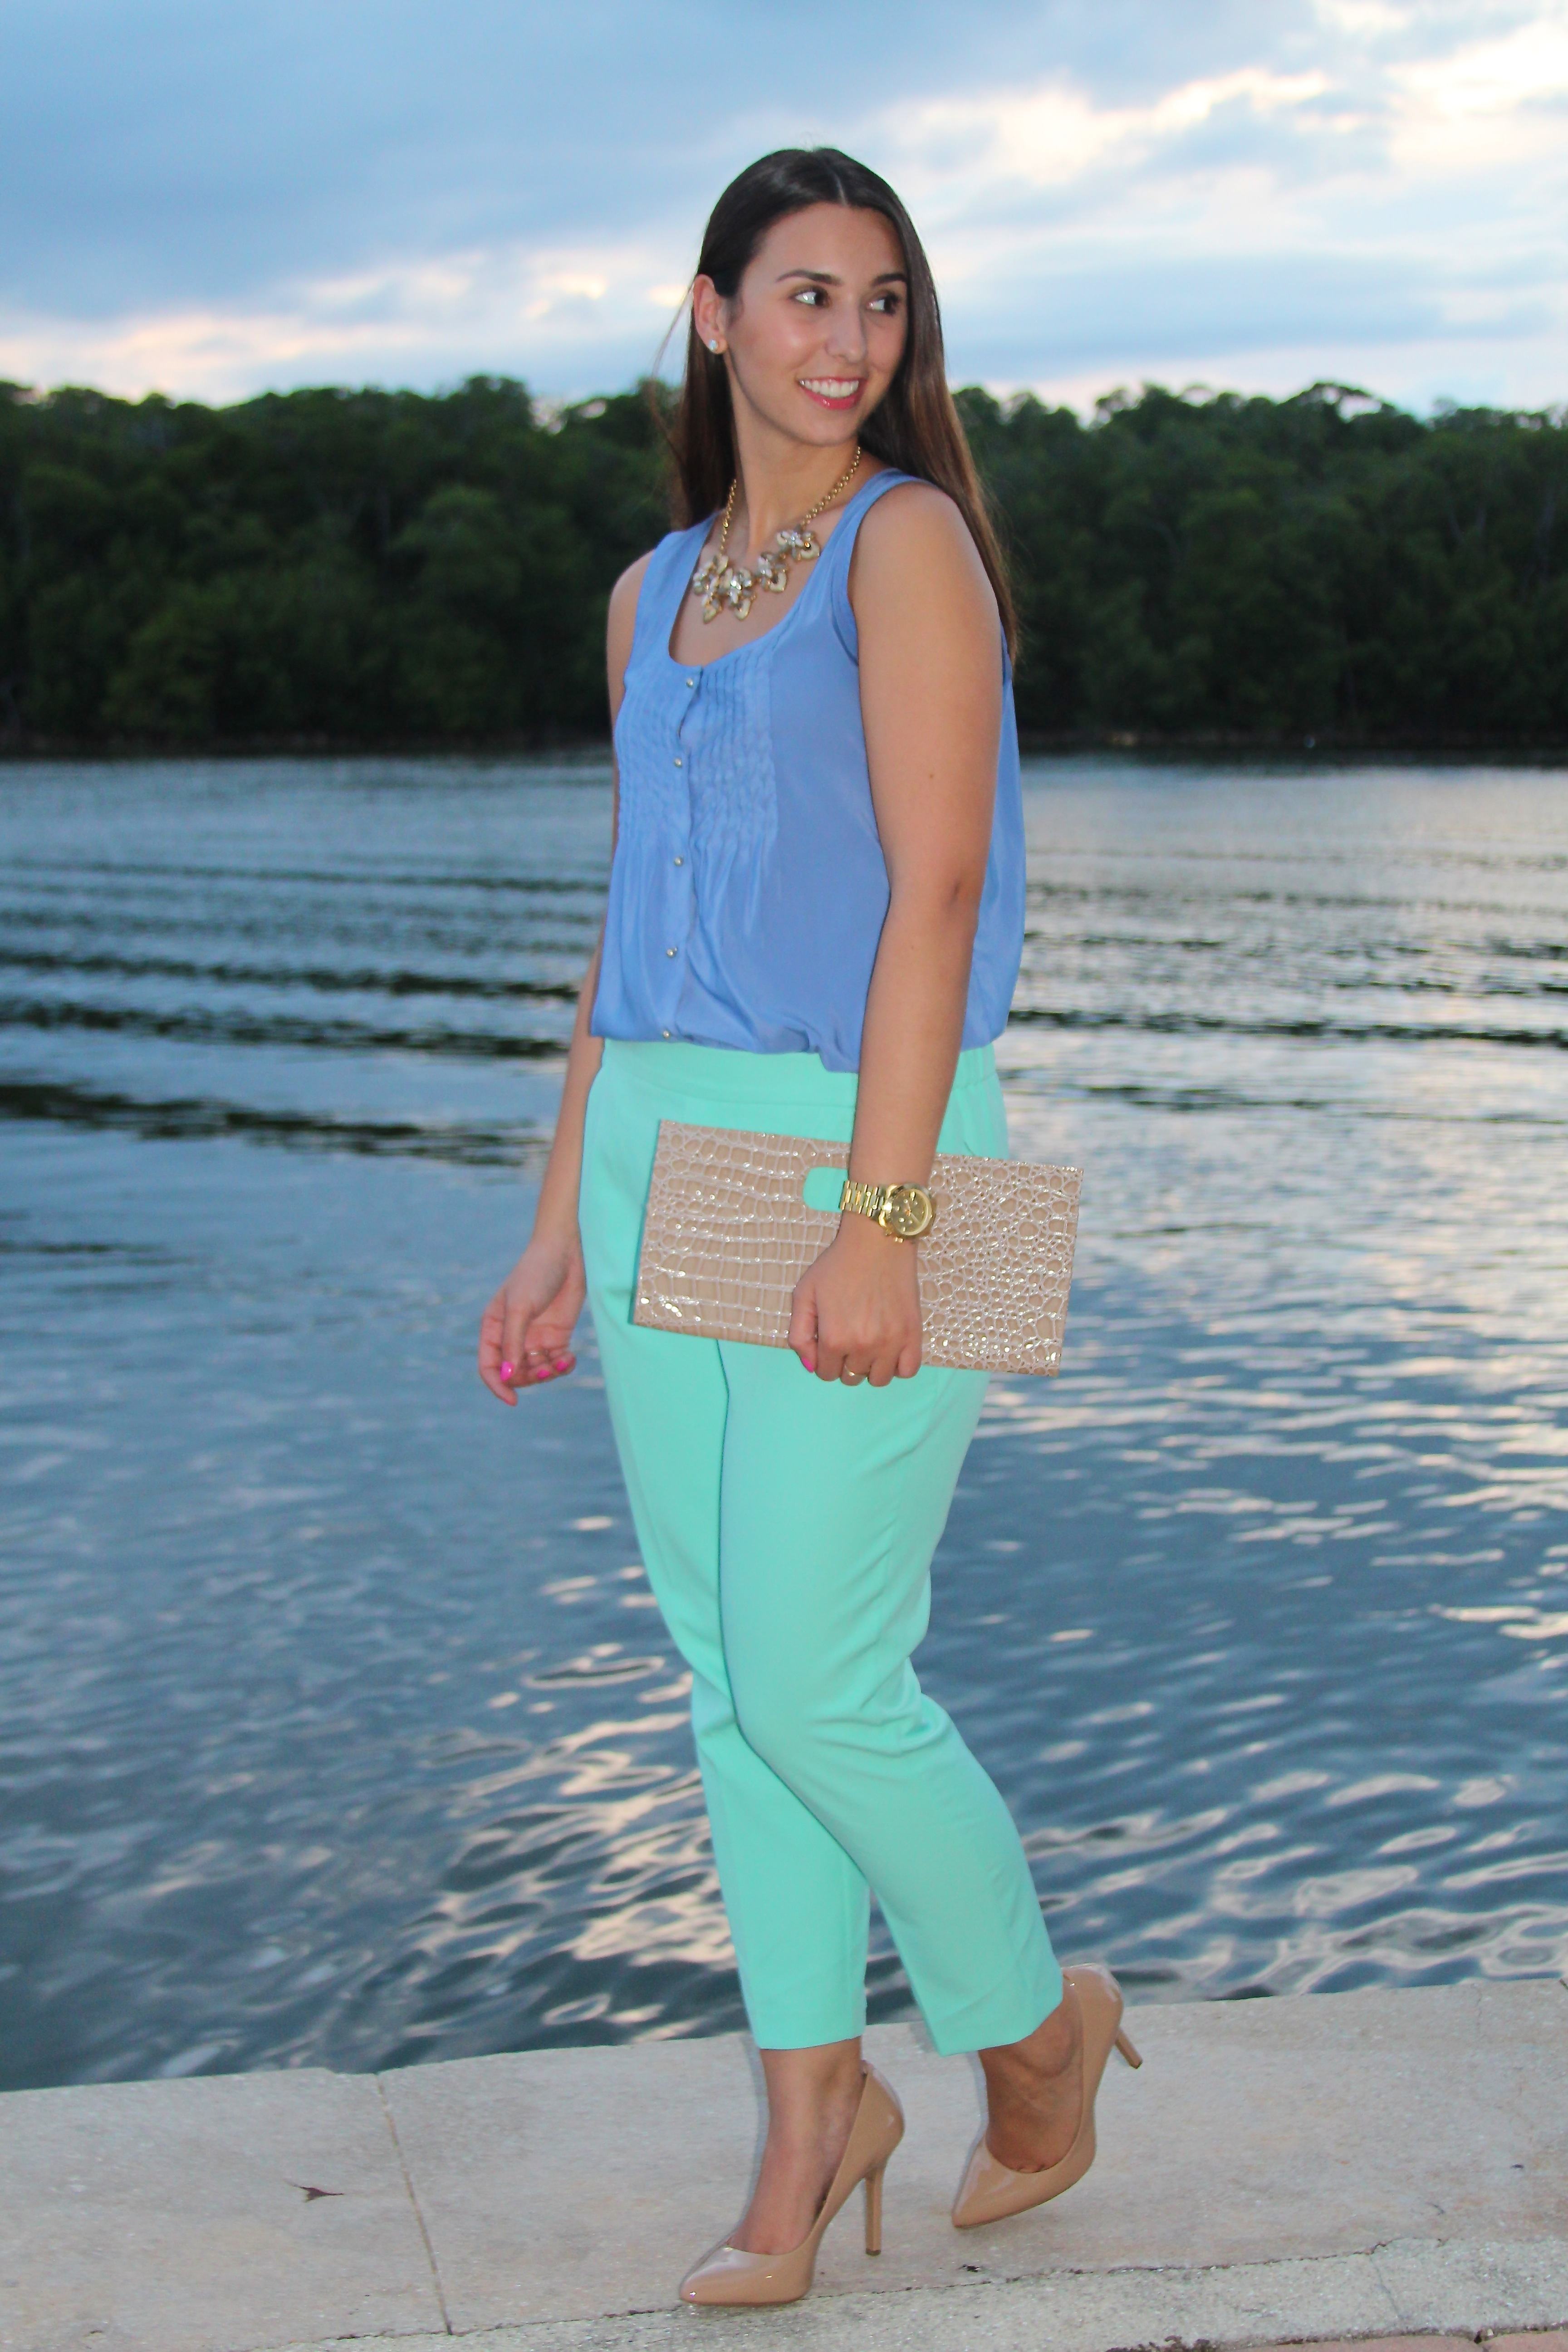 Pairing Pastels Together